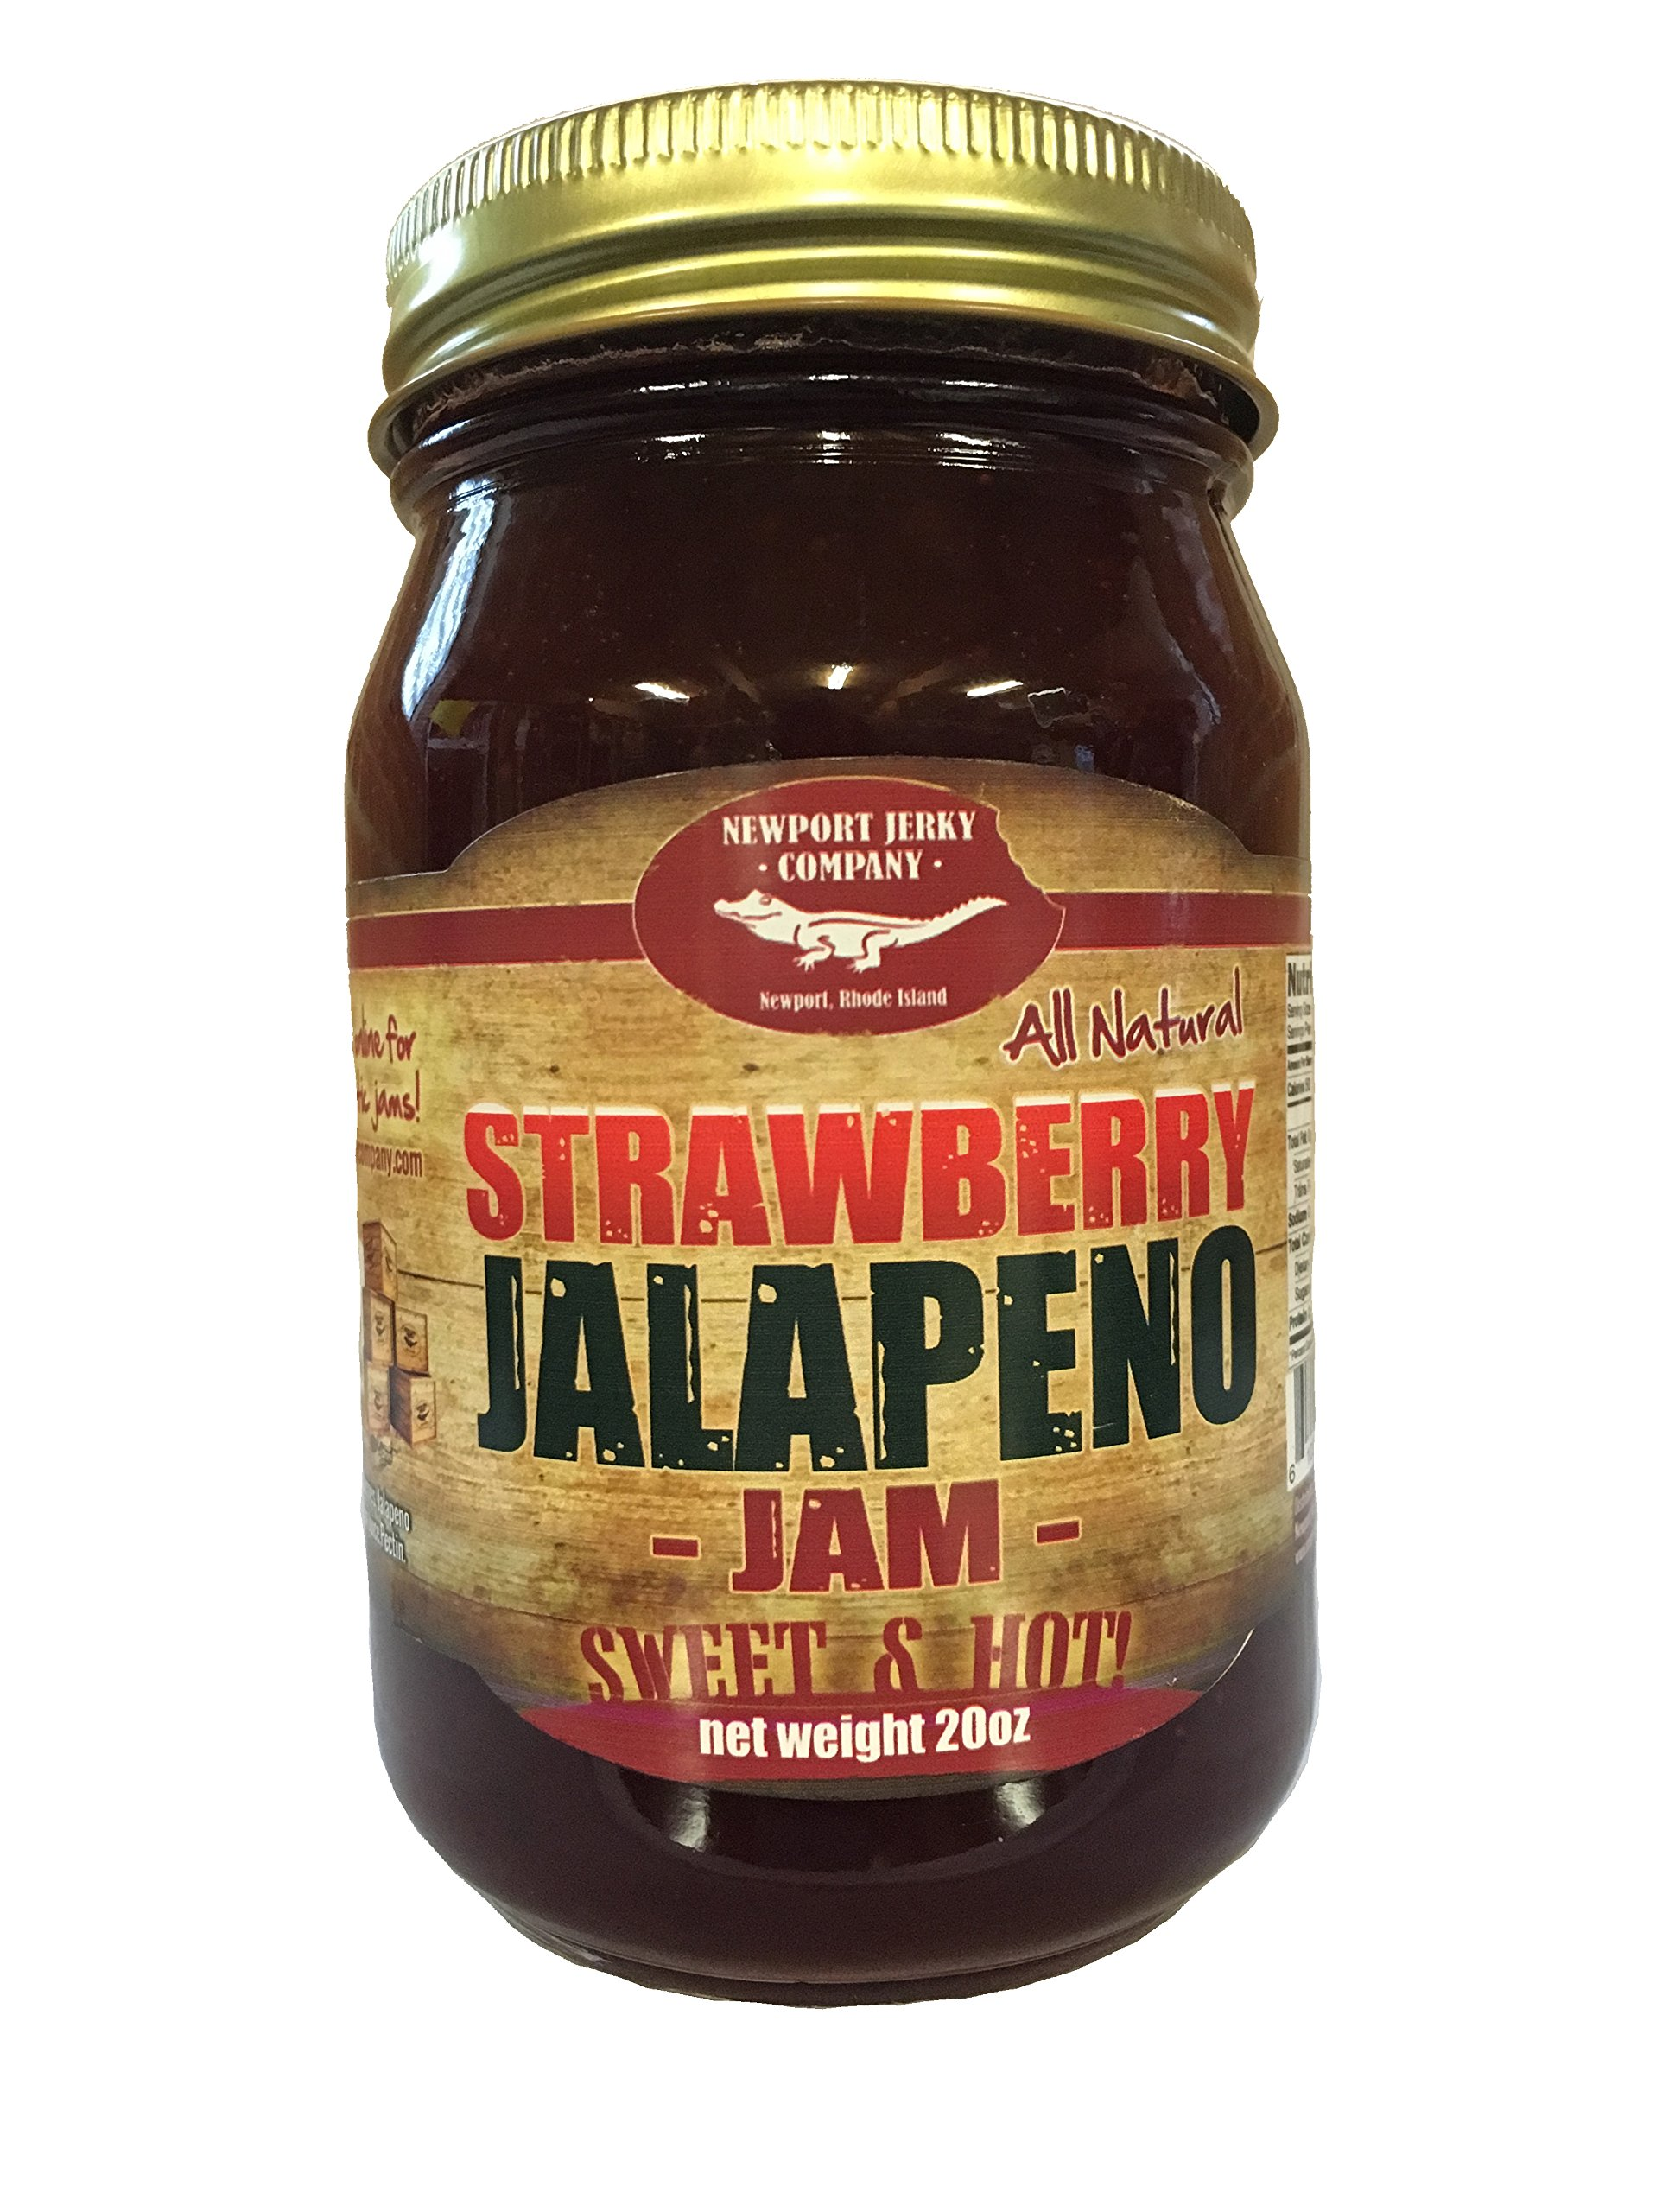 Gourmet Strawberry Jalapeno Jam 20oz Handcrafted Small Batch (FAT FREE, GLUTEN FREE & ALL NATURAL)